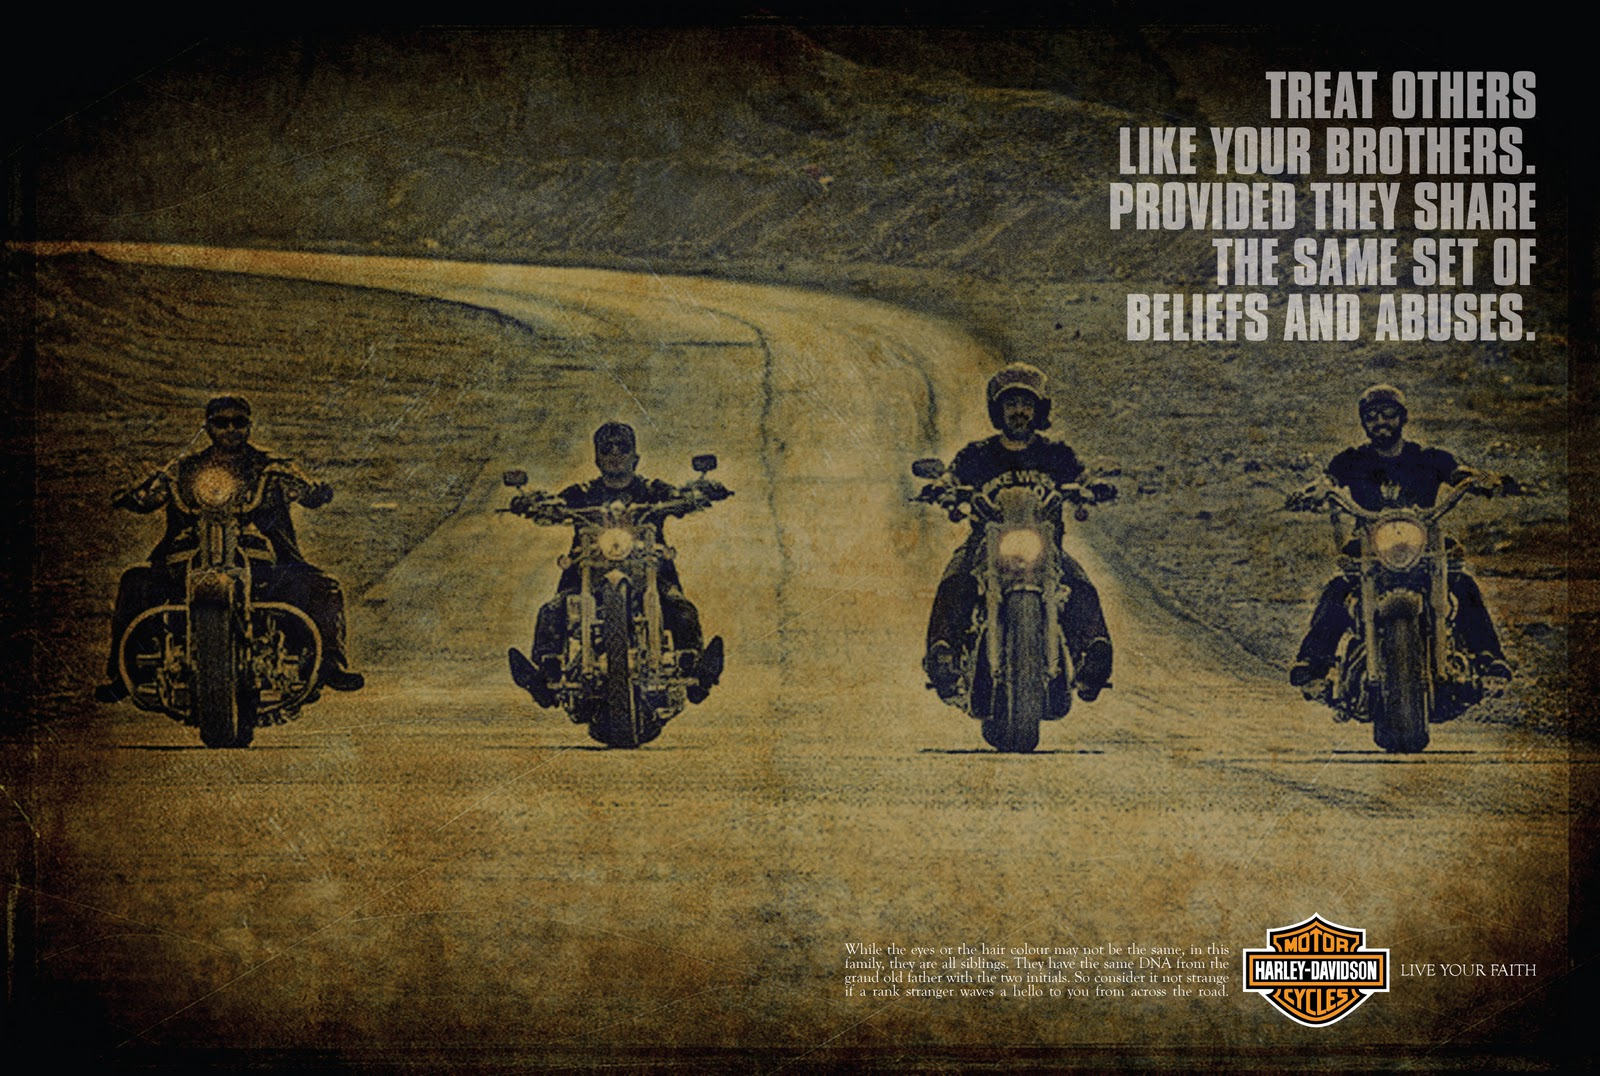 ALL WE NEED IS LOVE.: HARLEY-DAVIDSON - RELIGION